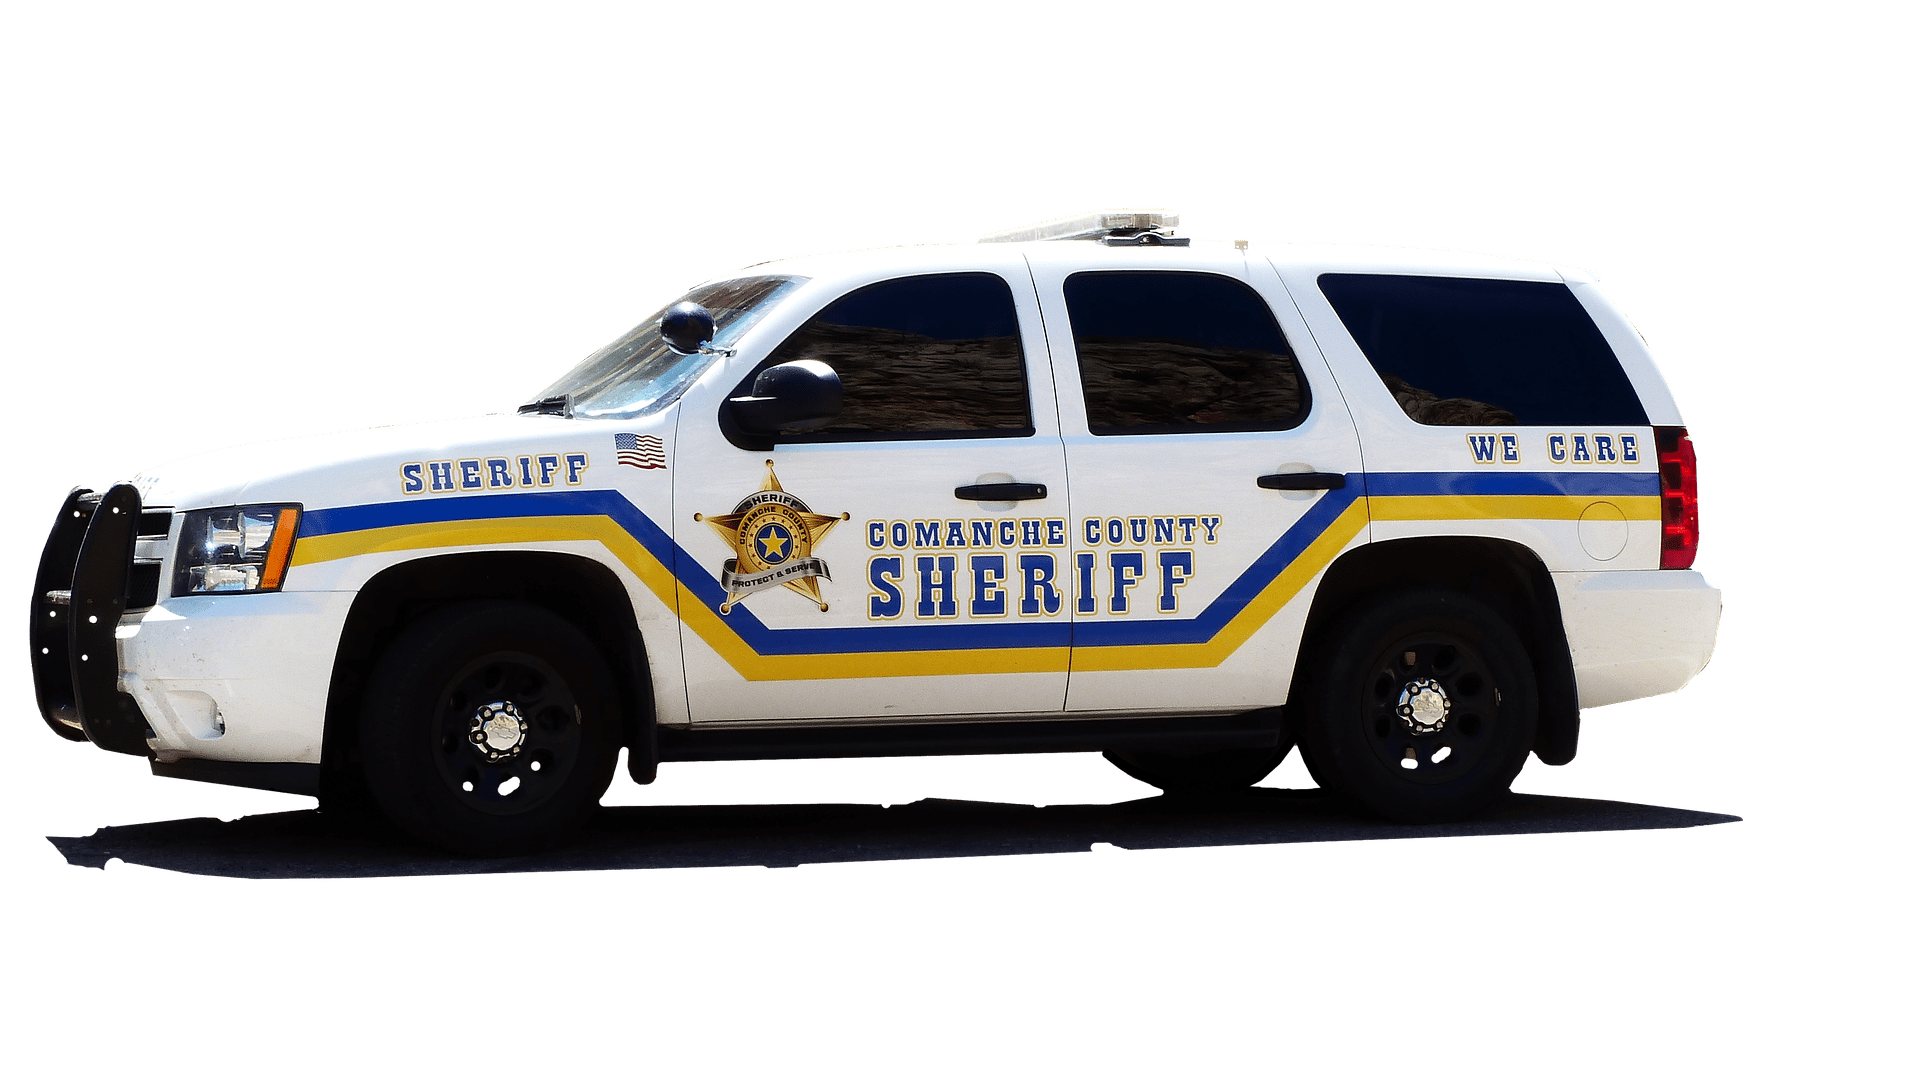 Pictured - A police sheriff vehicle   Source: Pixabay